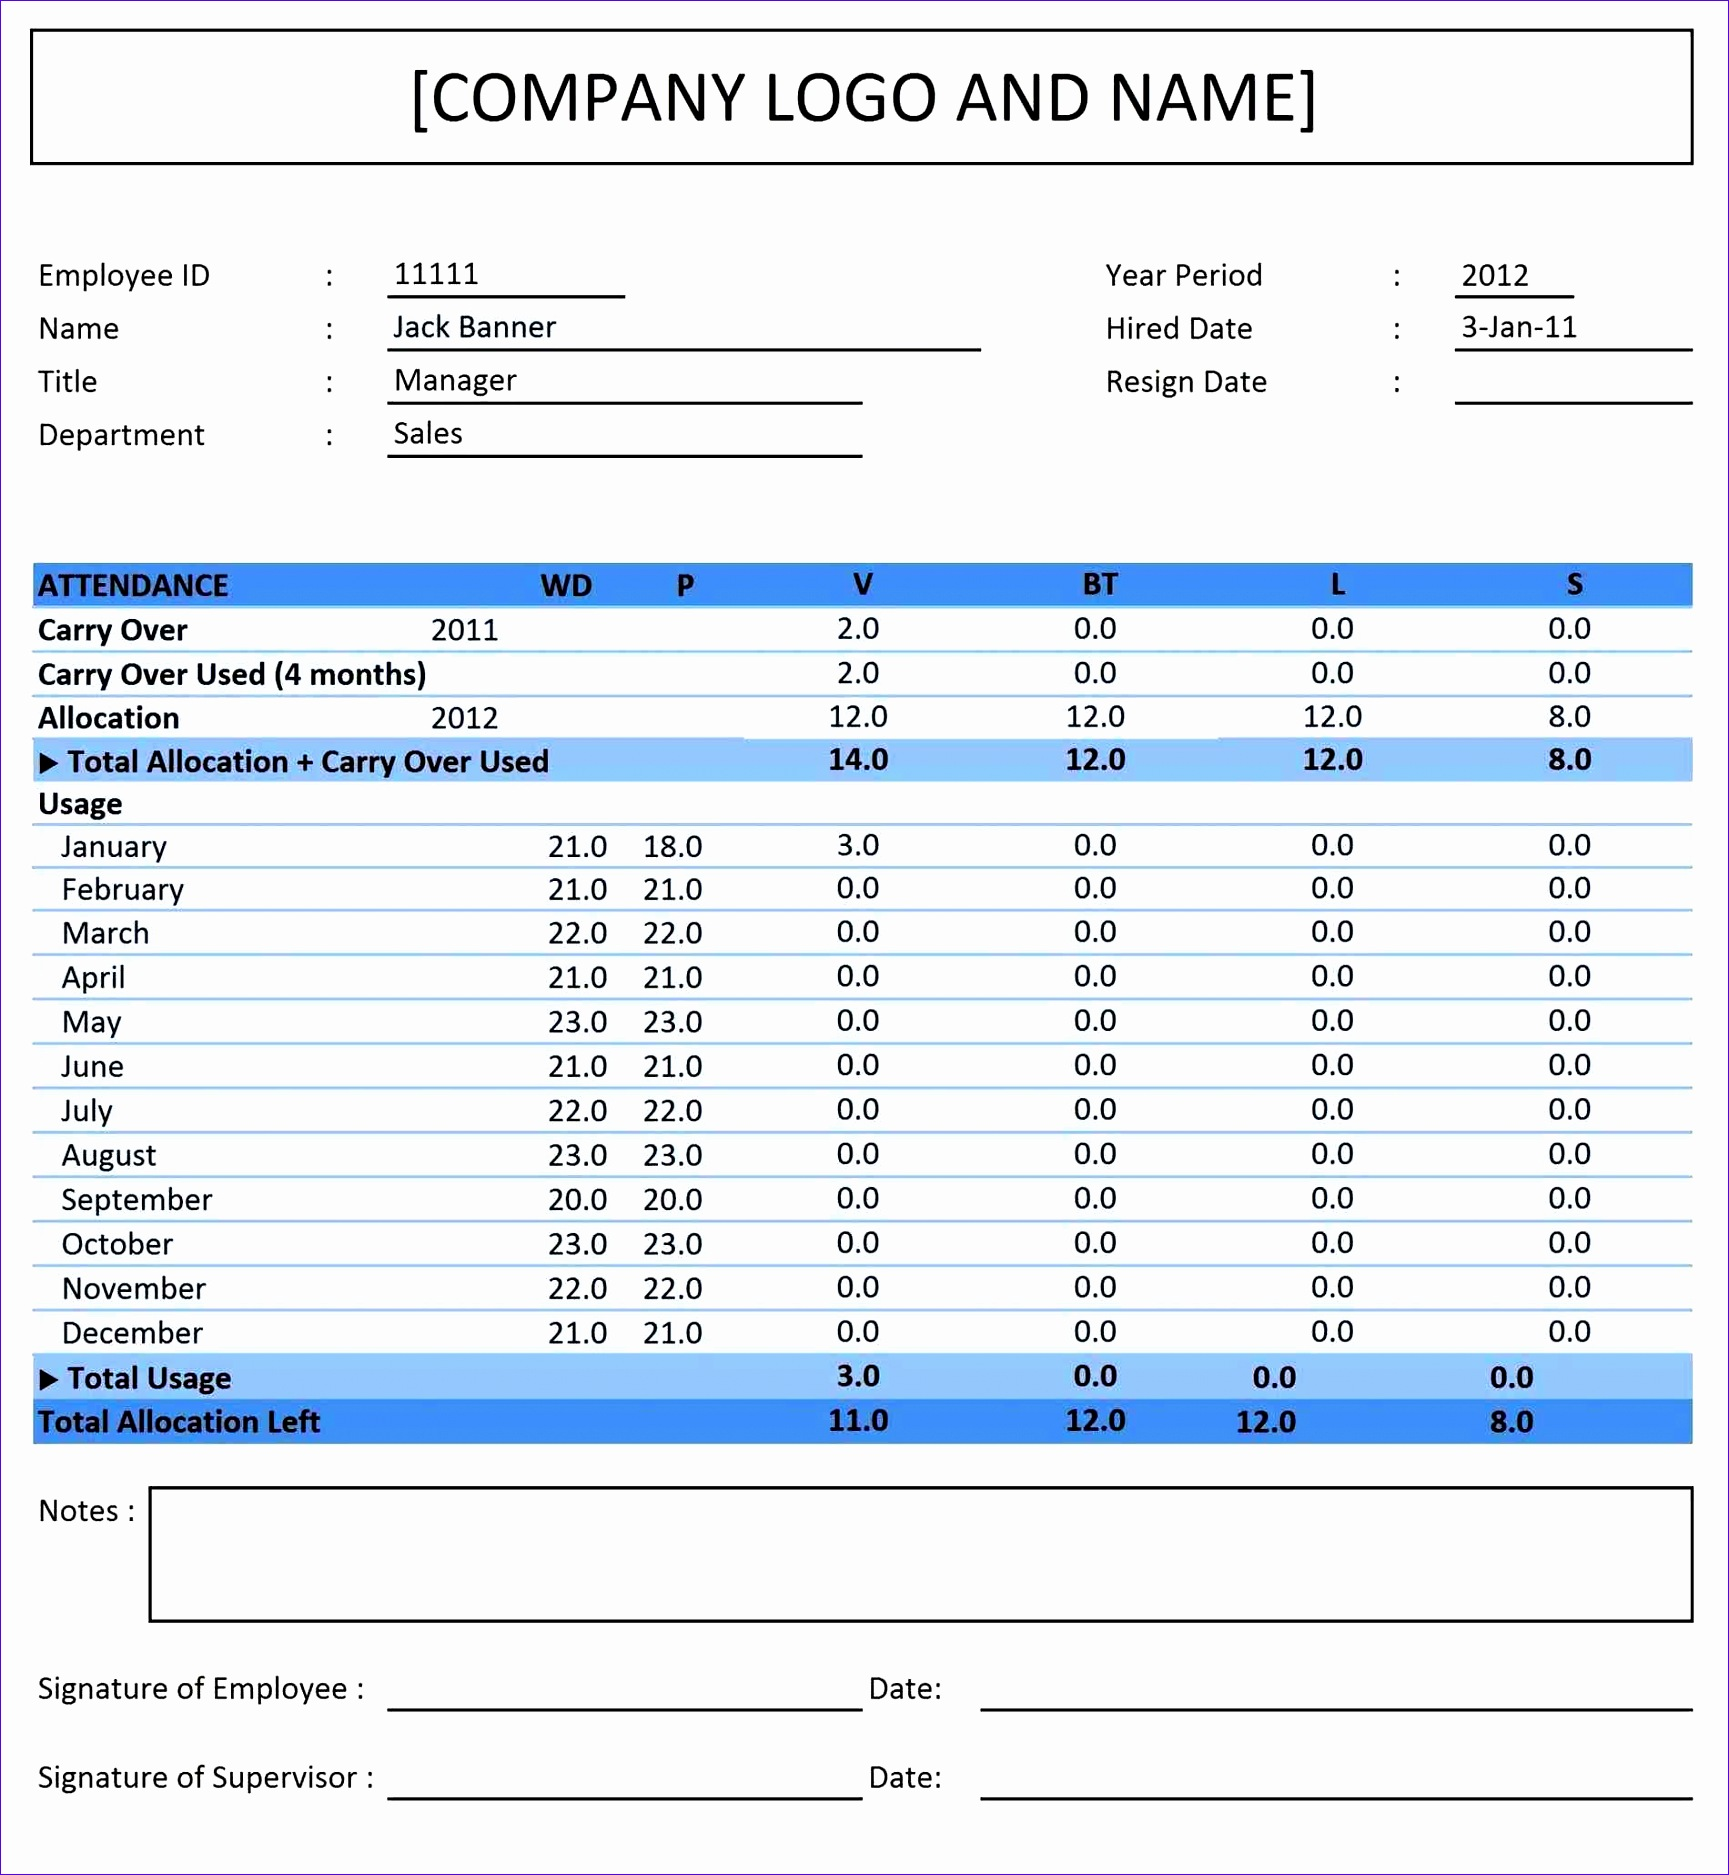 templatez sales Sales Tracking Spreadsheet Template templates templatez spreadsheet template for tracking haisume import spreadsheet Sales Tracking Spreadsheet Template template for sales